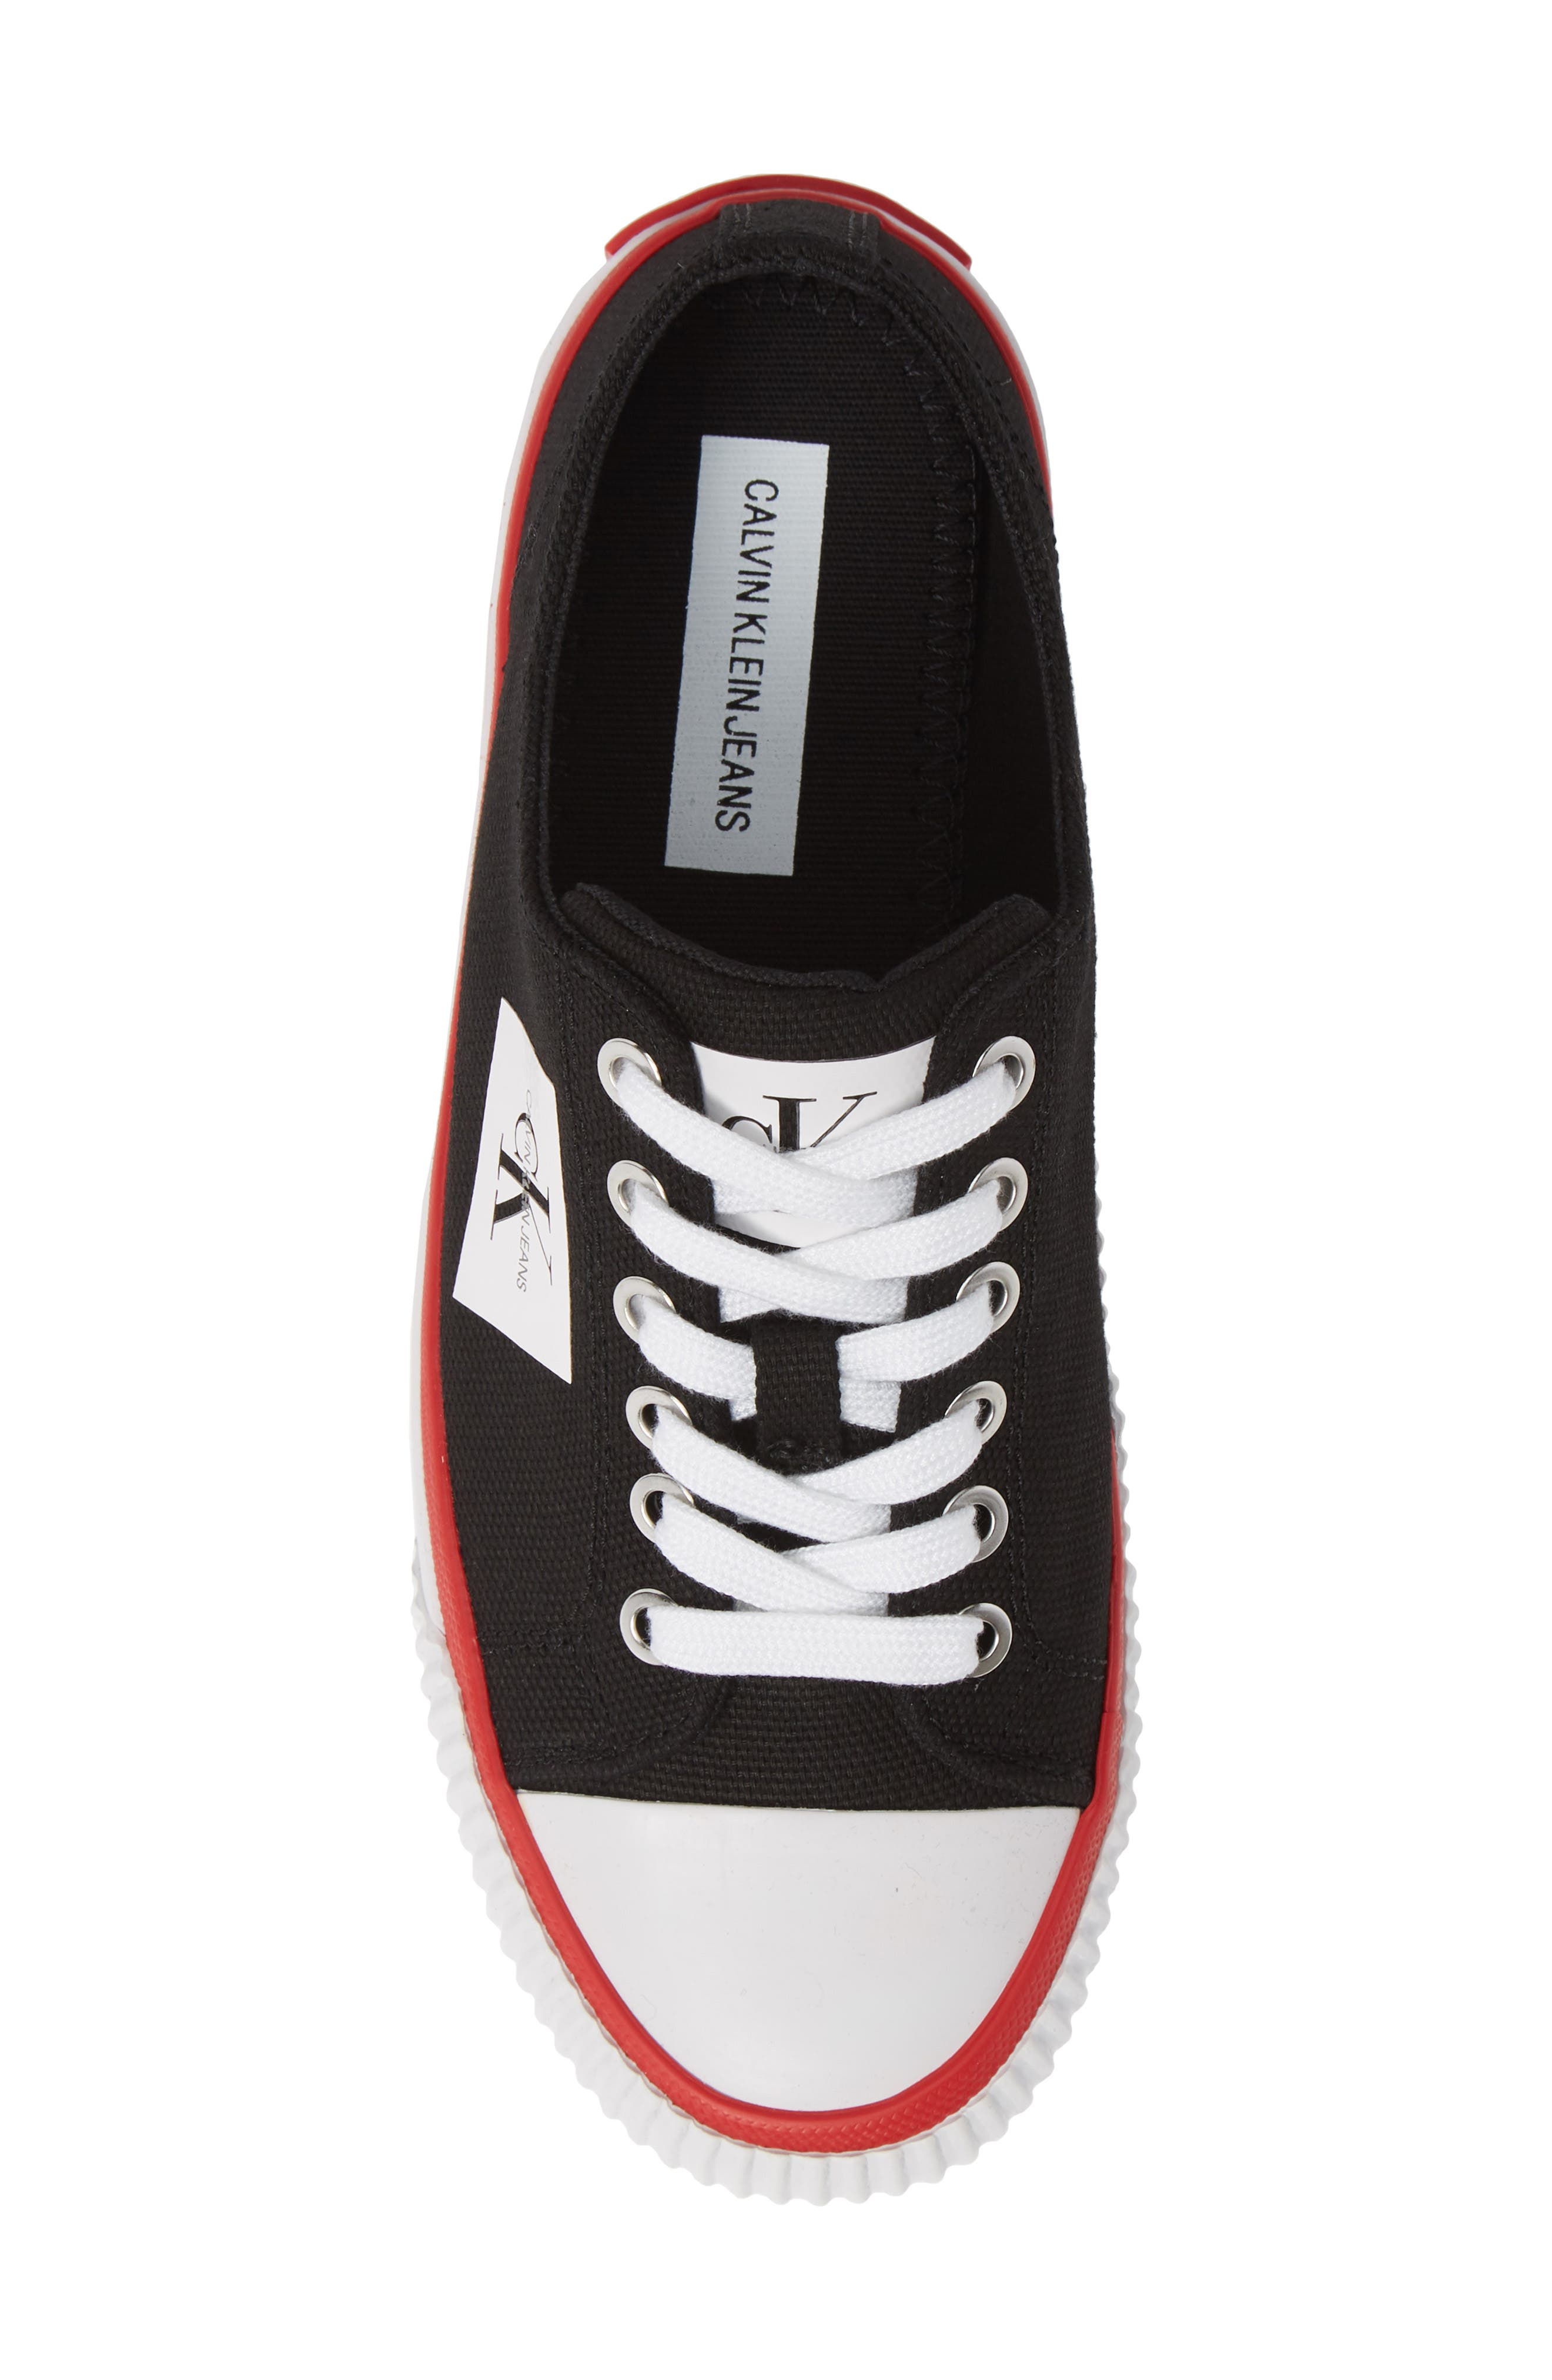 Ivory Lace-Up Sneaker,                             Alternate thumbnail 5, color,                             001